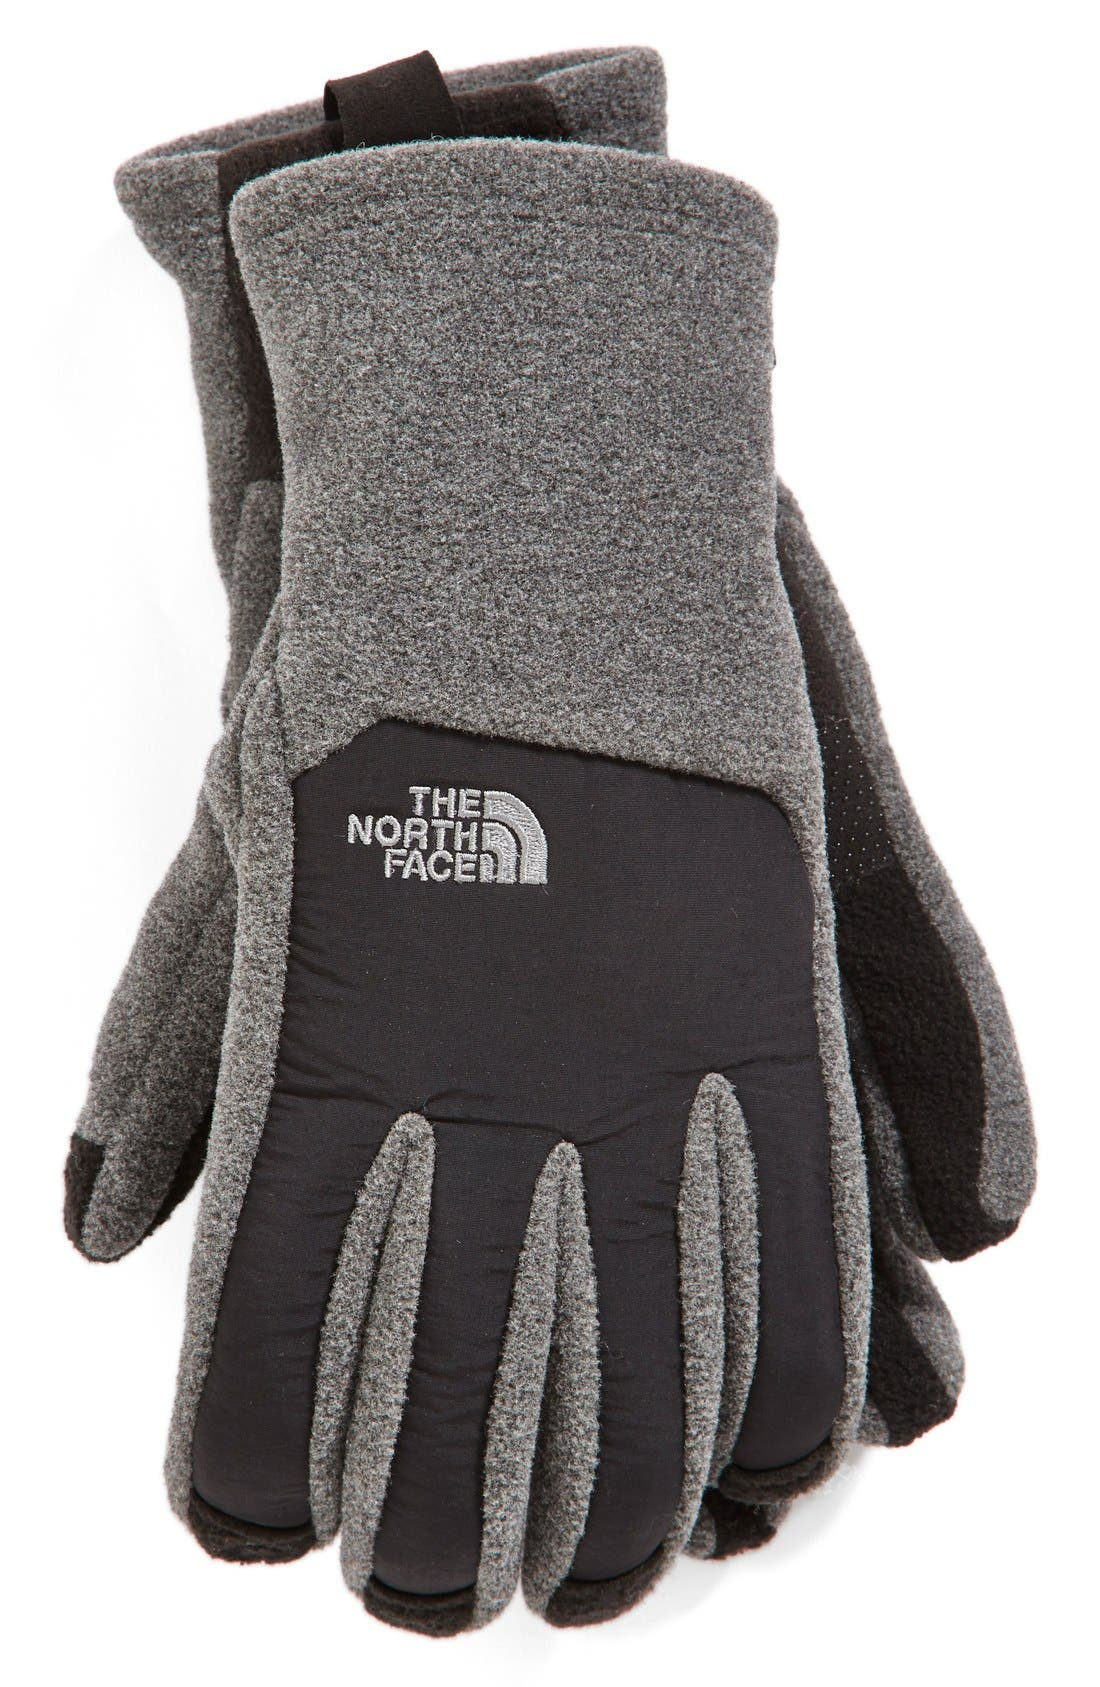 The North Face 'Denali' E-Tip Gloves